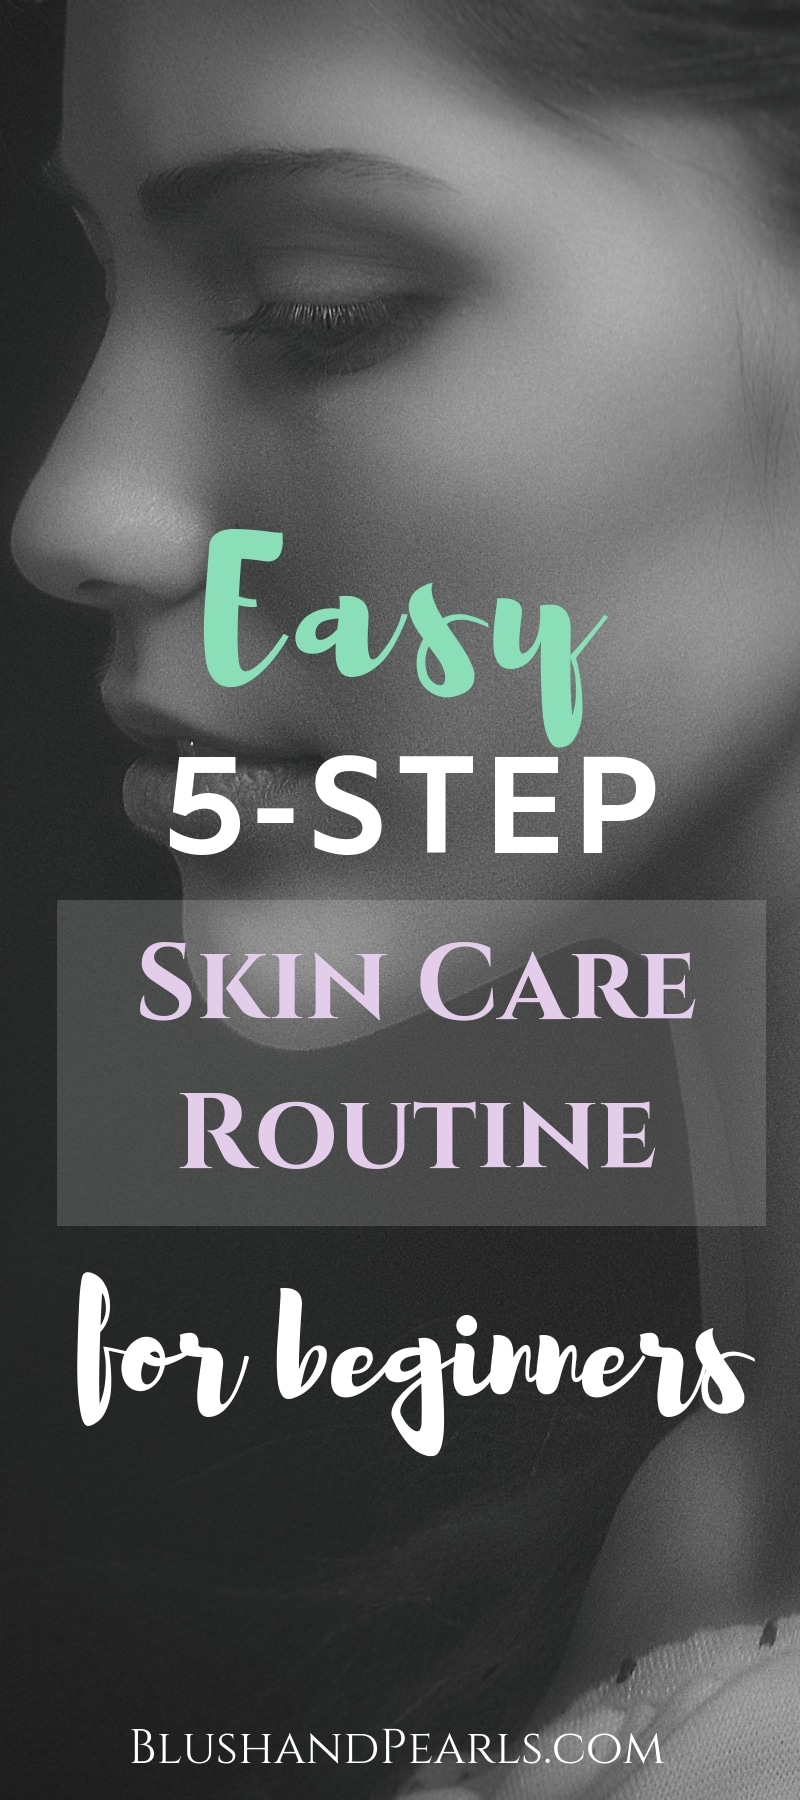 easy skincare routine for beginners - Blush & Pearls